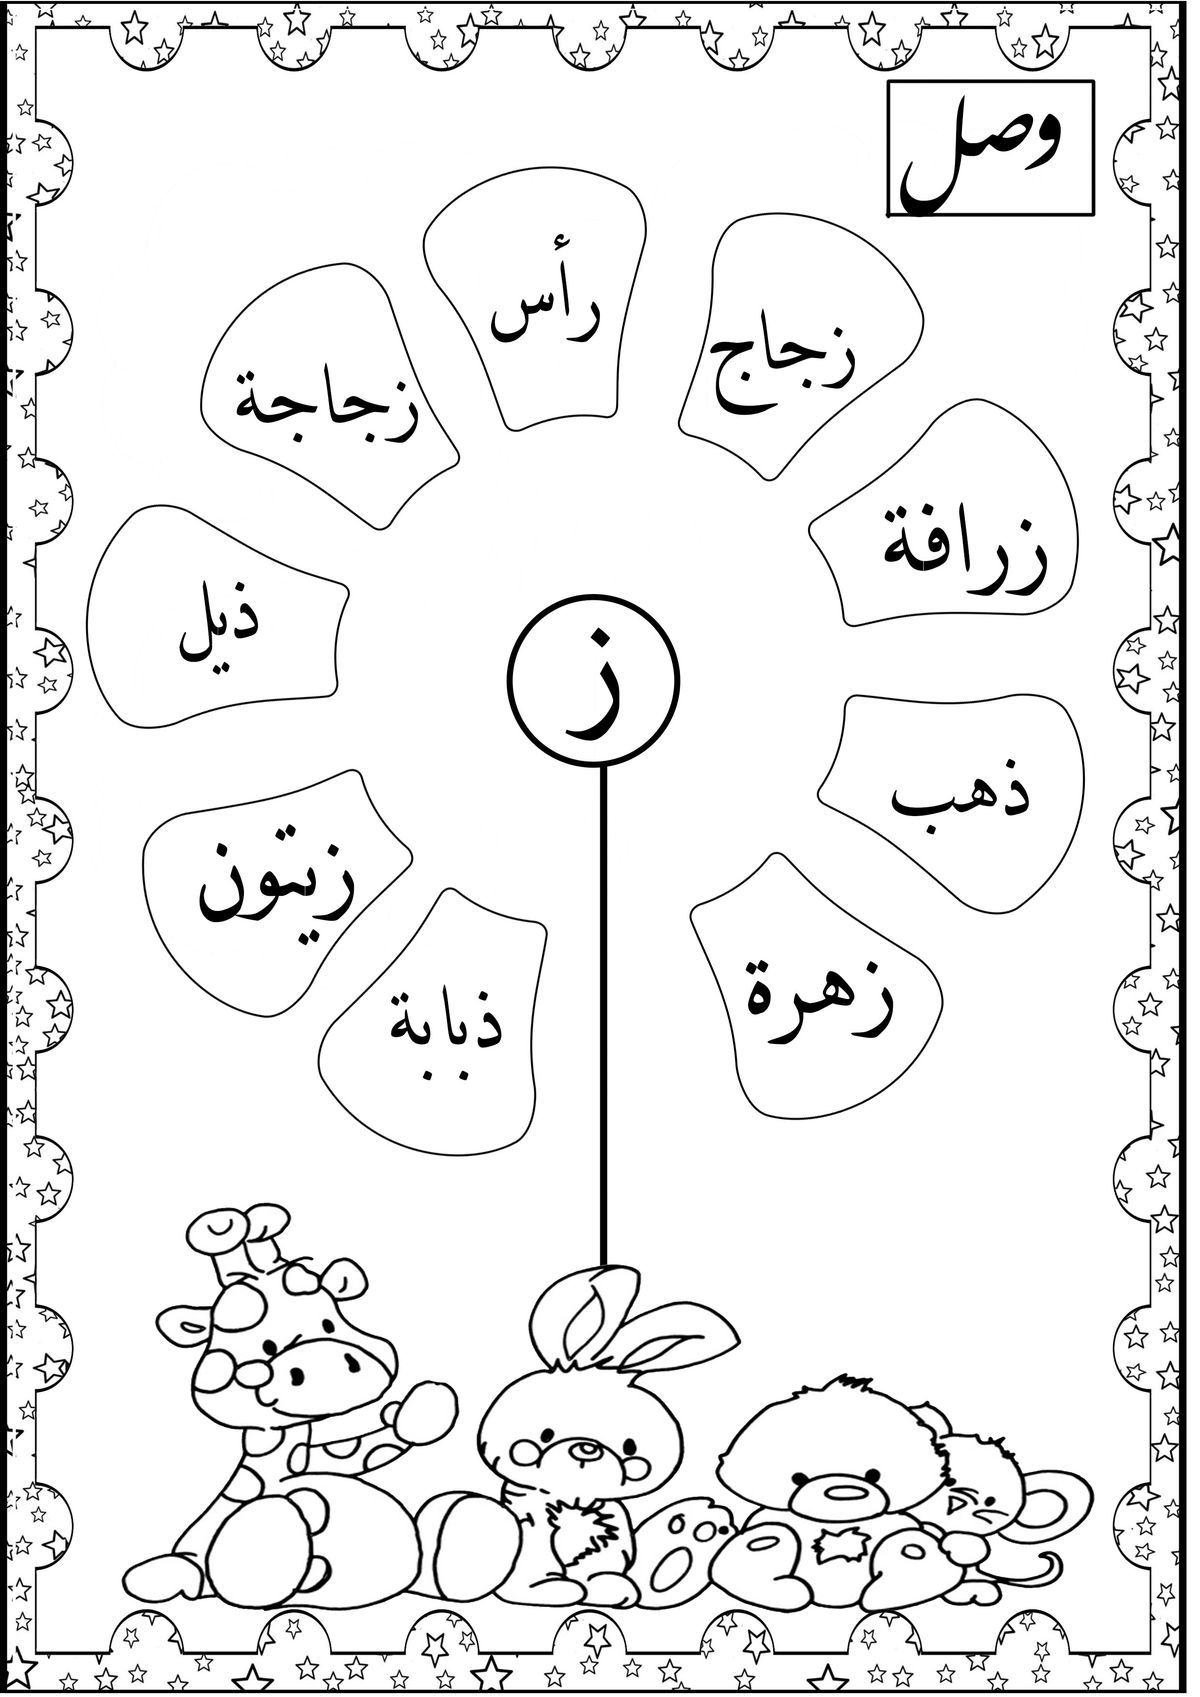 Medinakids Arabic Number Seven Trace Worksheet For Kids T